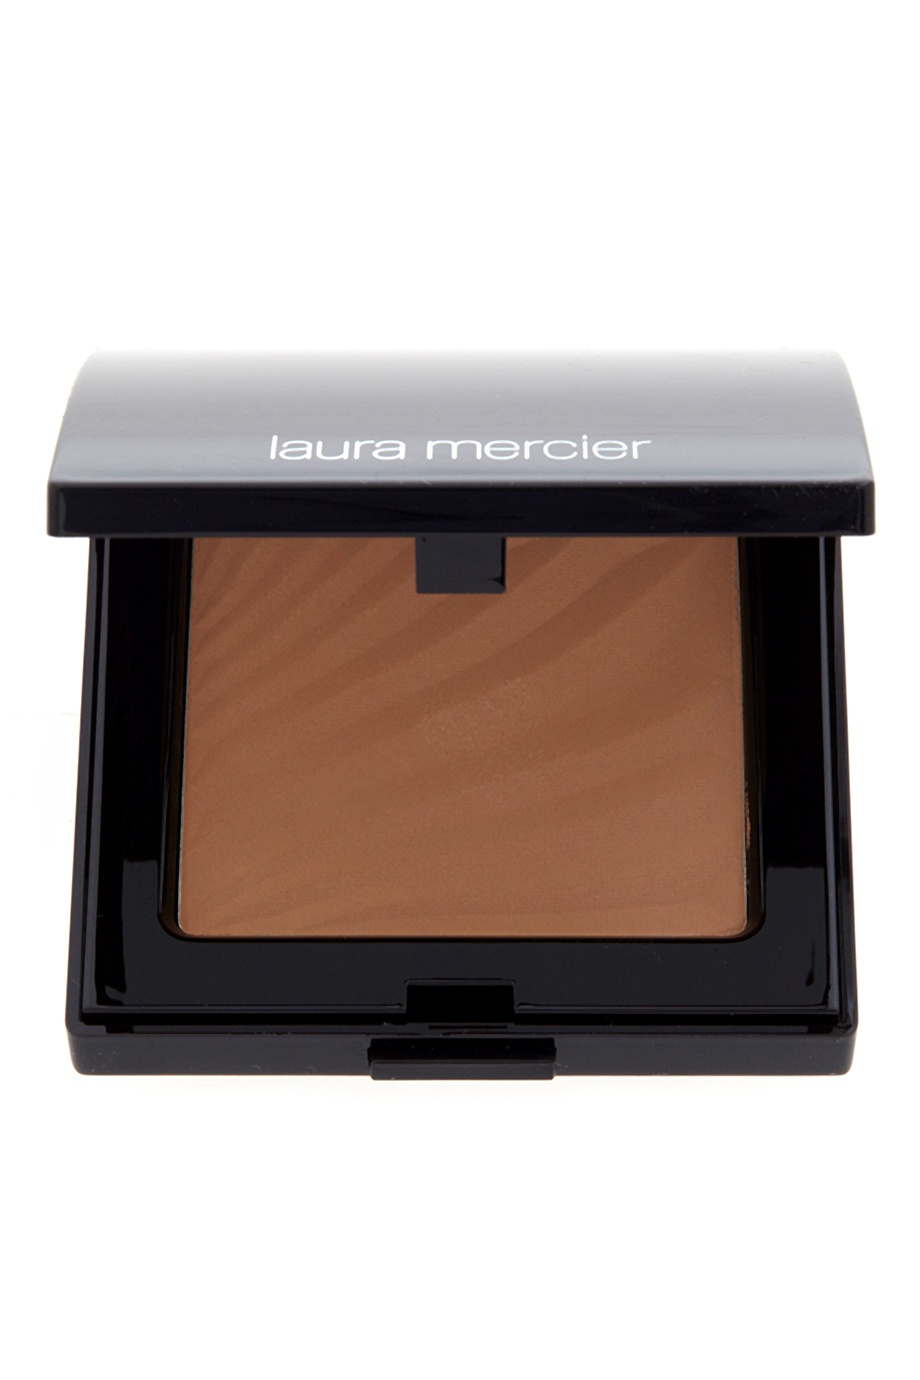 Бронзирующая пудра Bronzing Pressed Powder Dune Bronze Laura Mercier (фото)